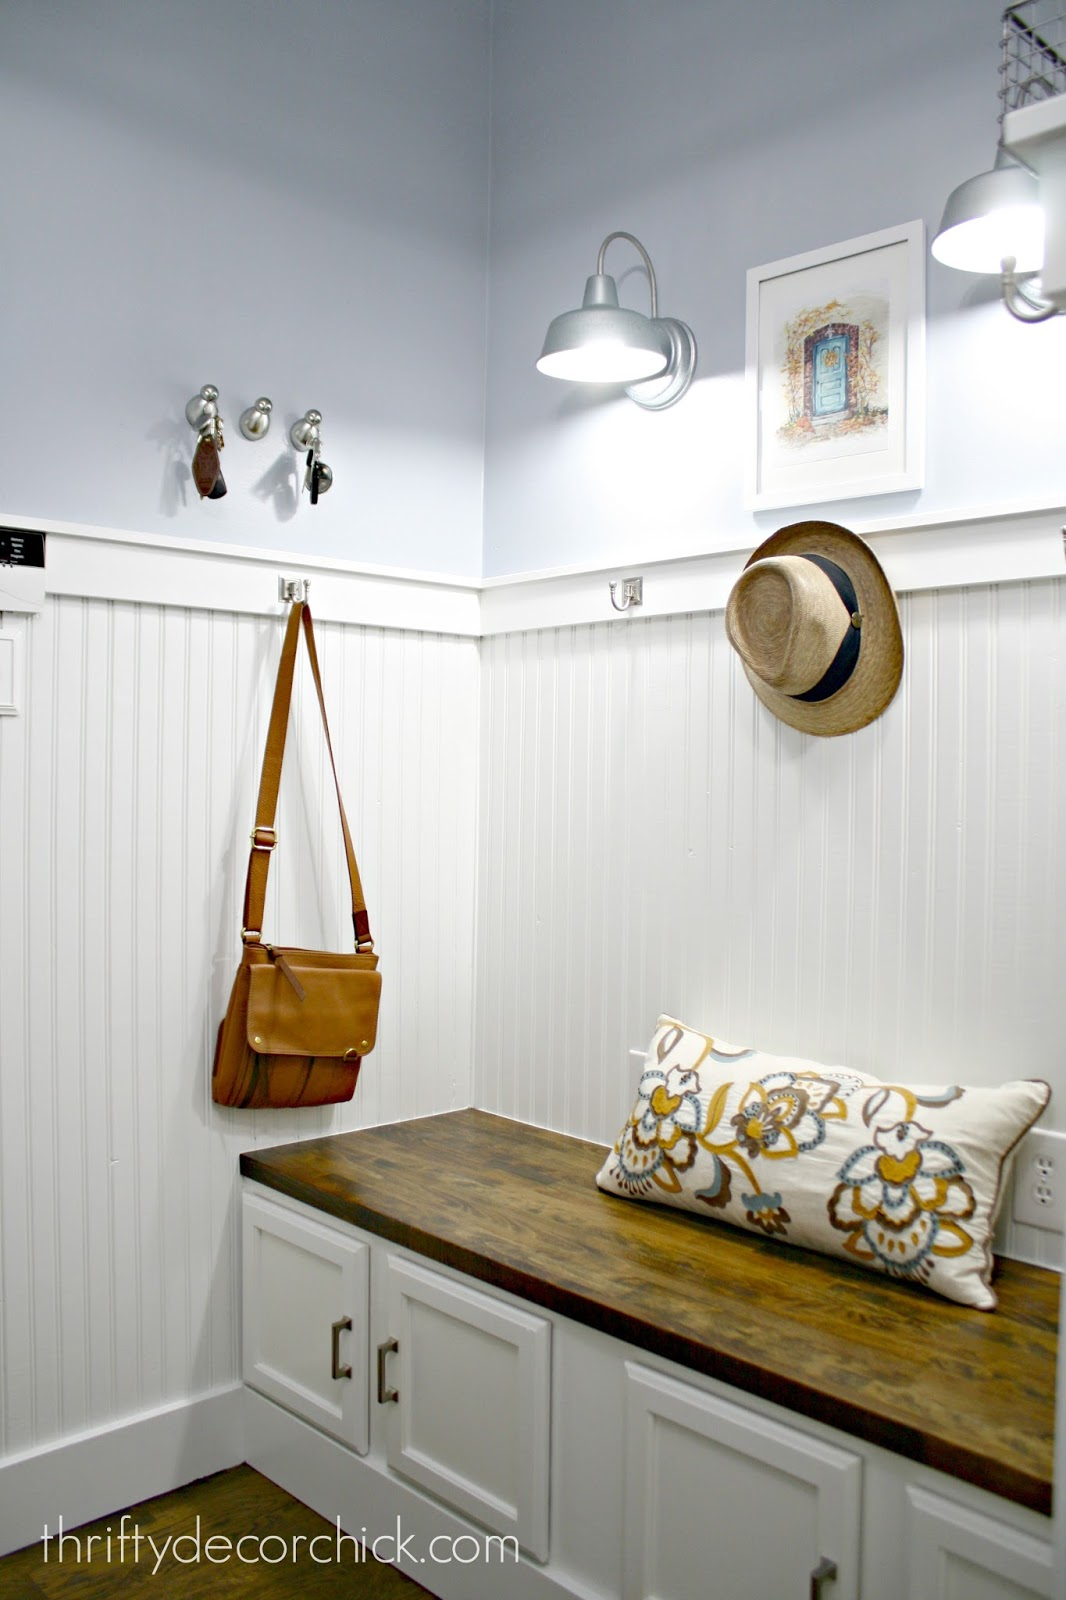 Our Mudroom Makeover From Dark To Bright And Light